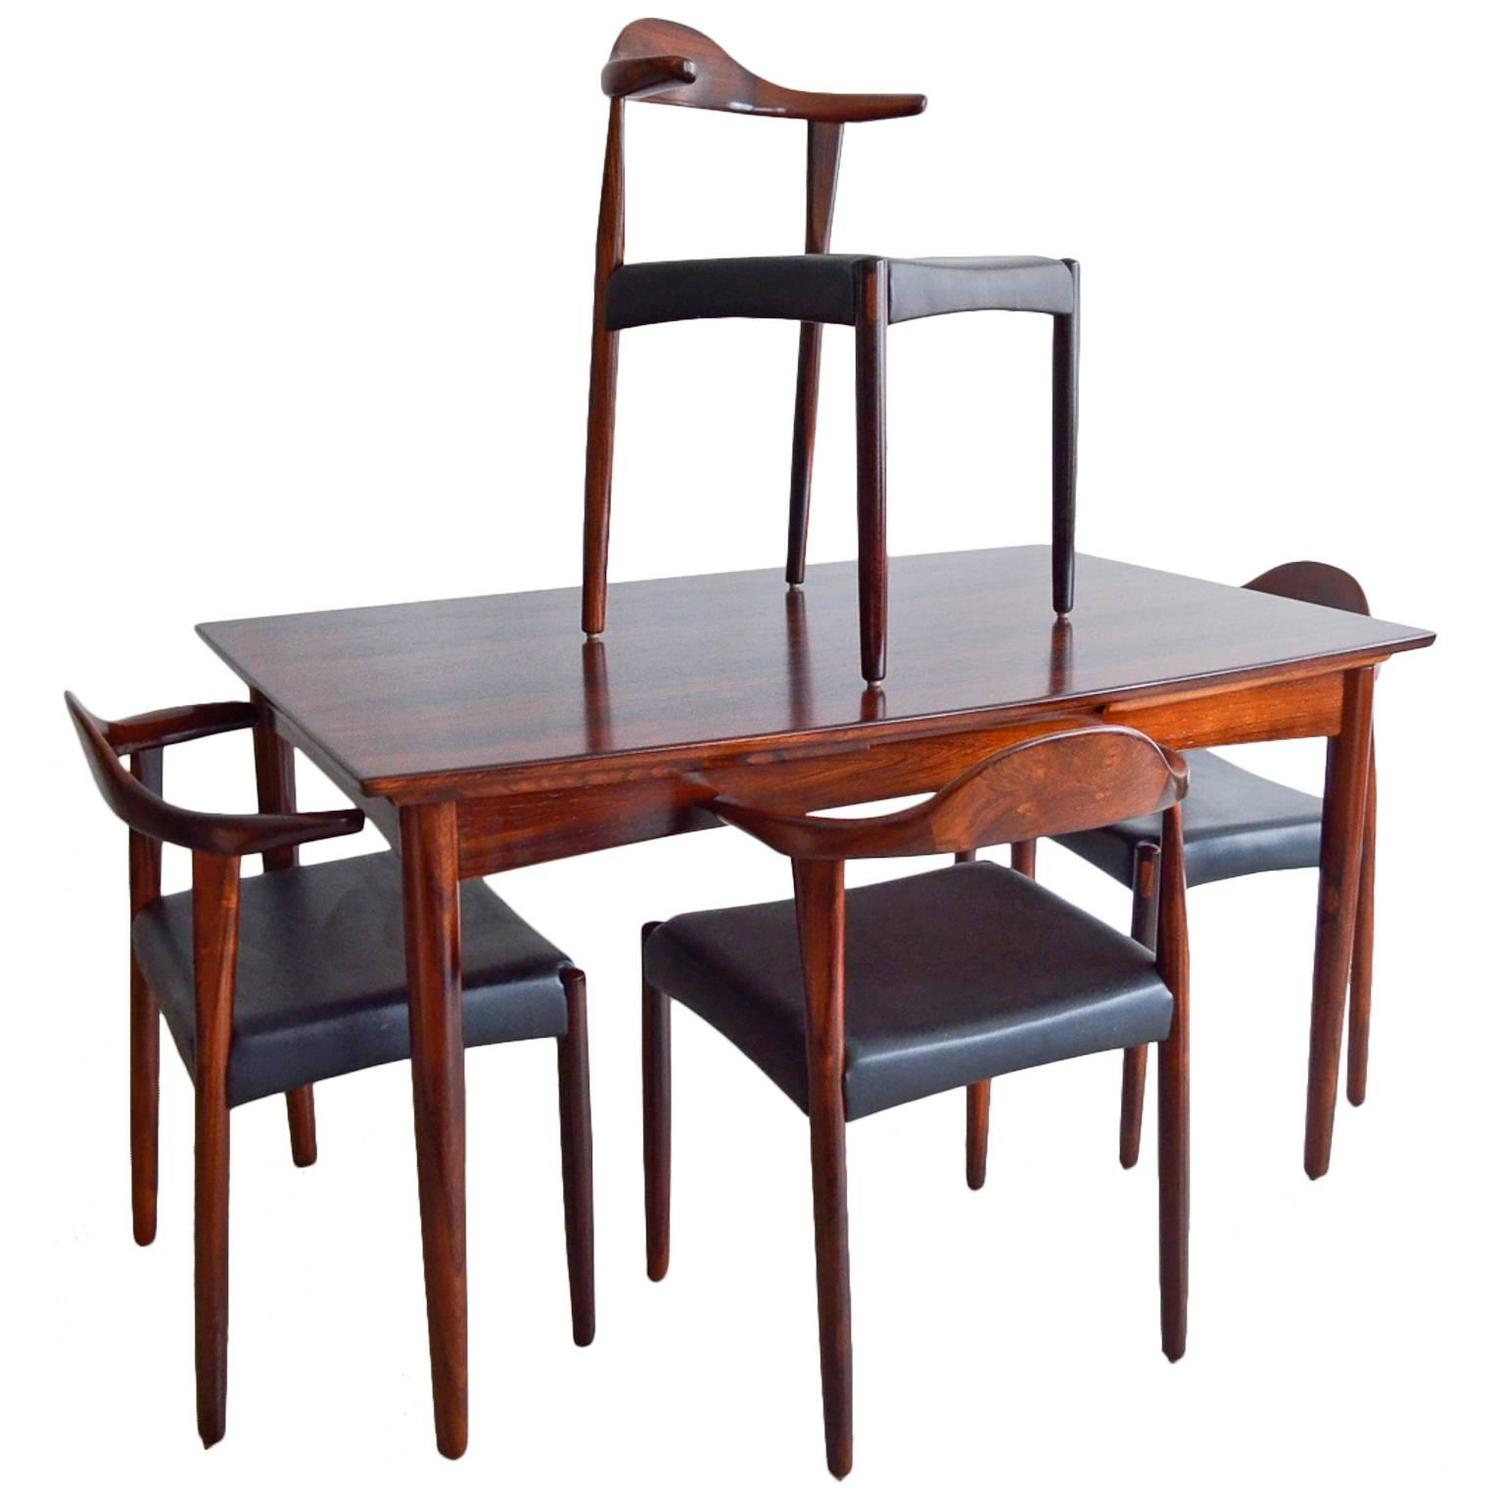 Exceptional Sculpted Rosewood Dining Set By Harry Ostergaard At 1stdibs